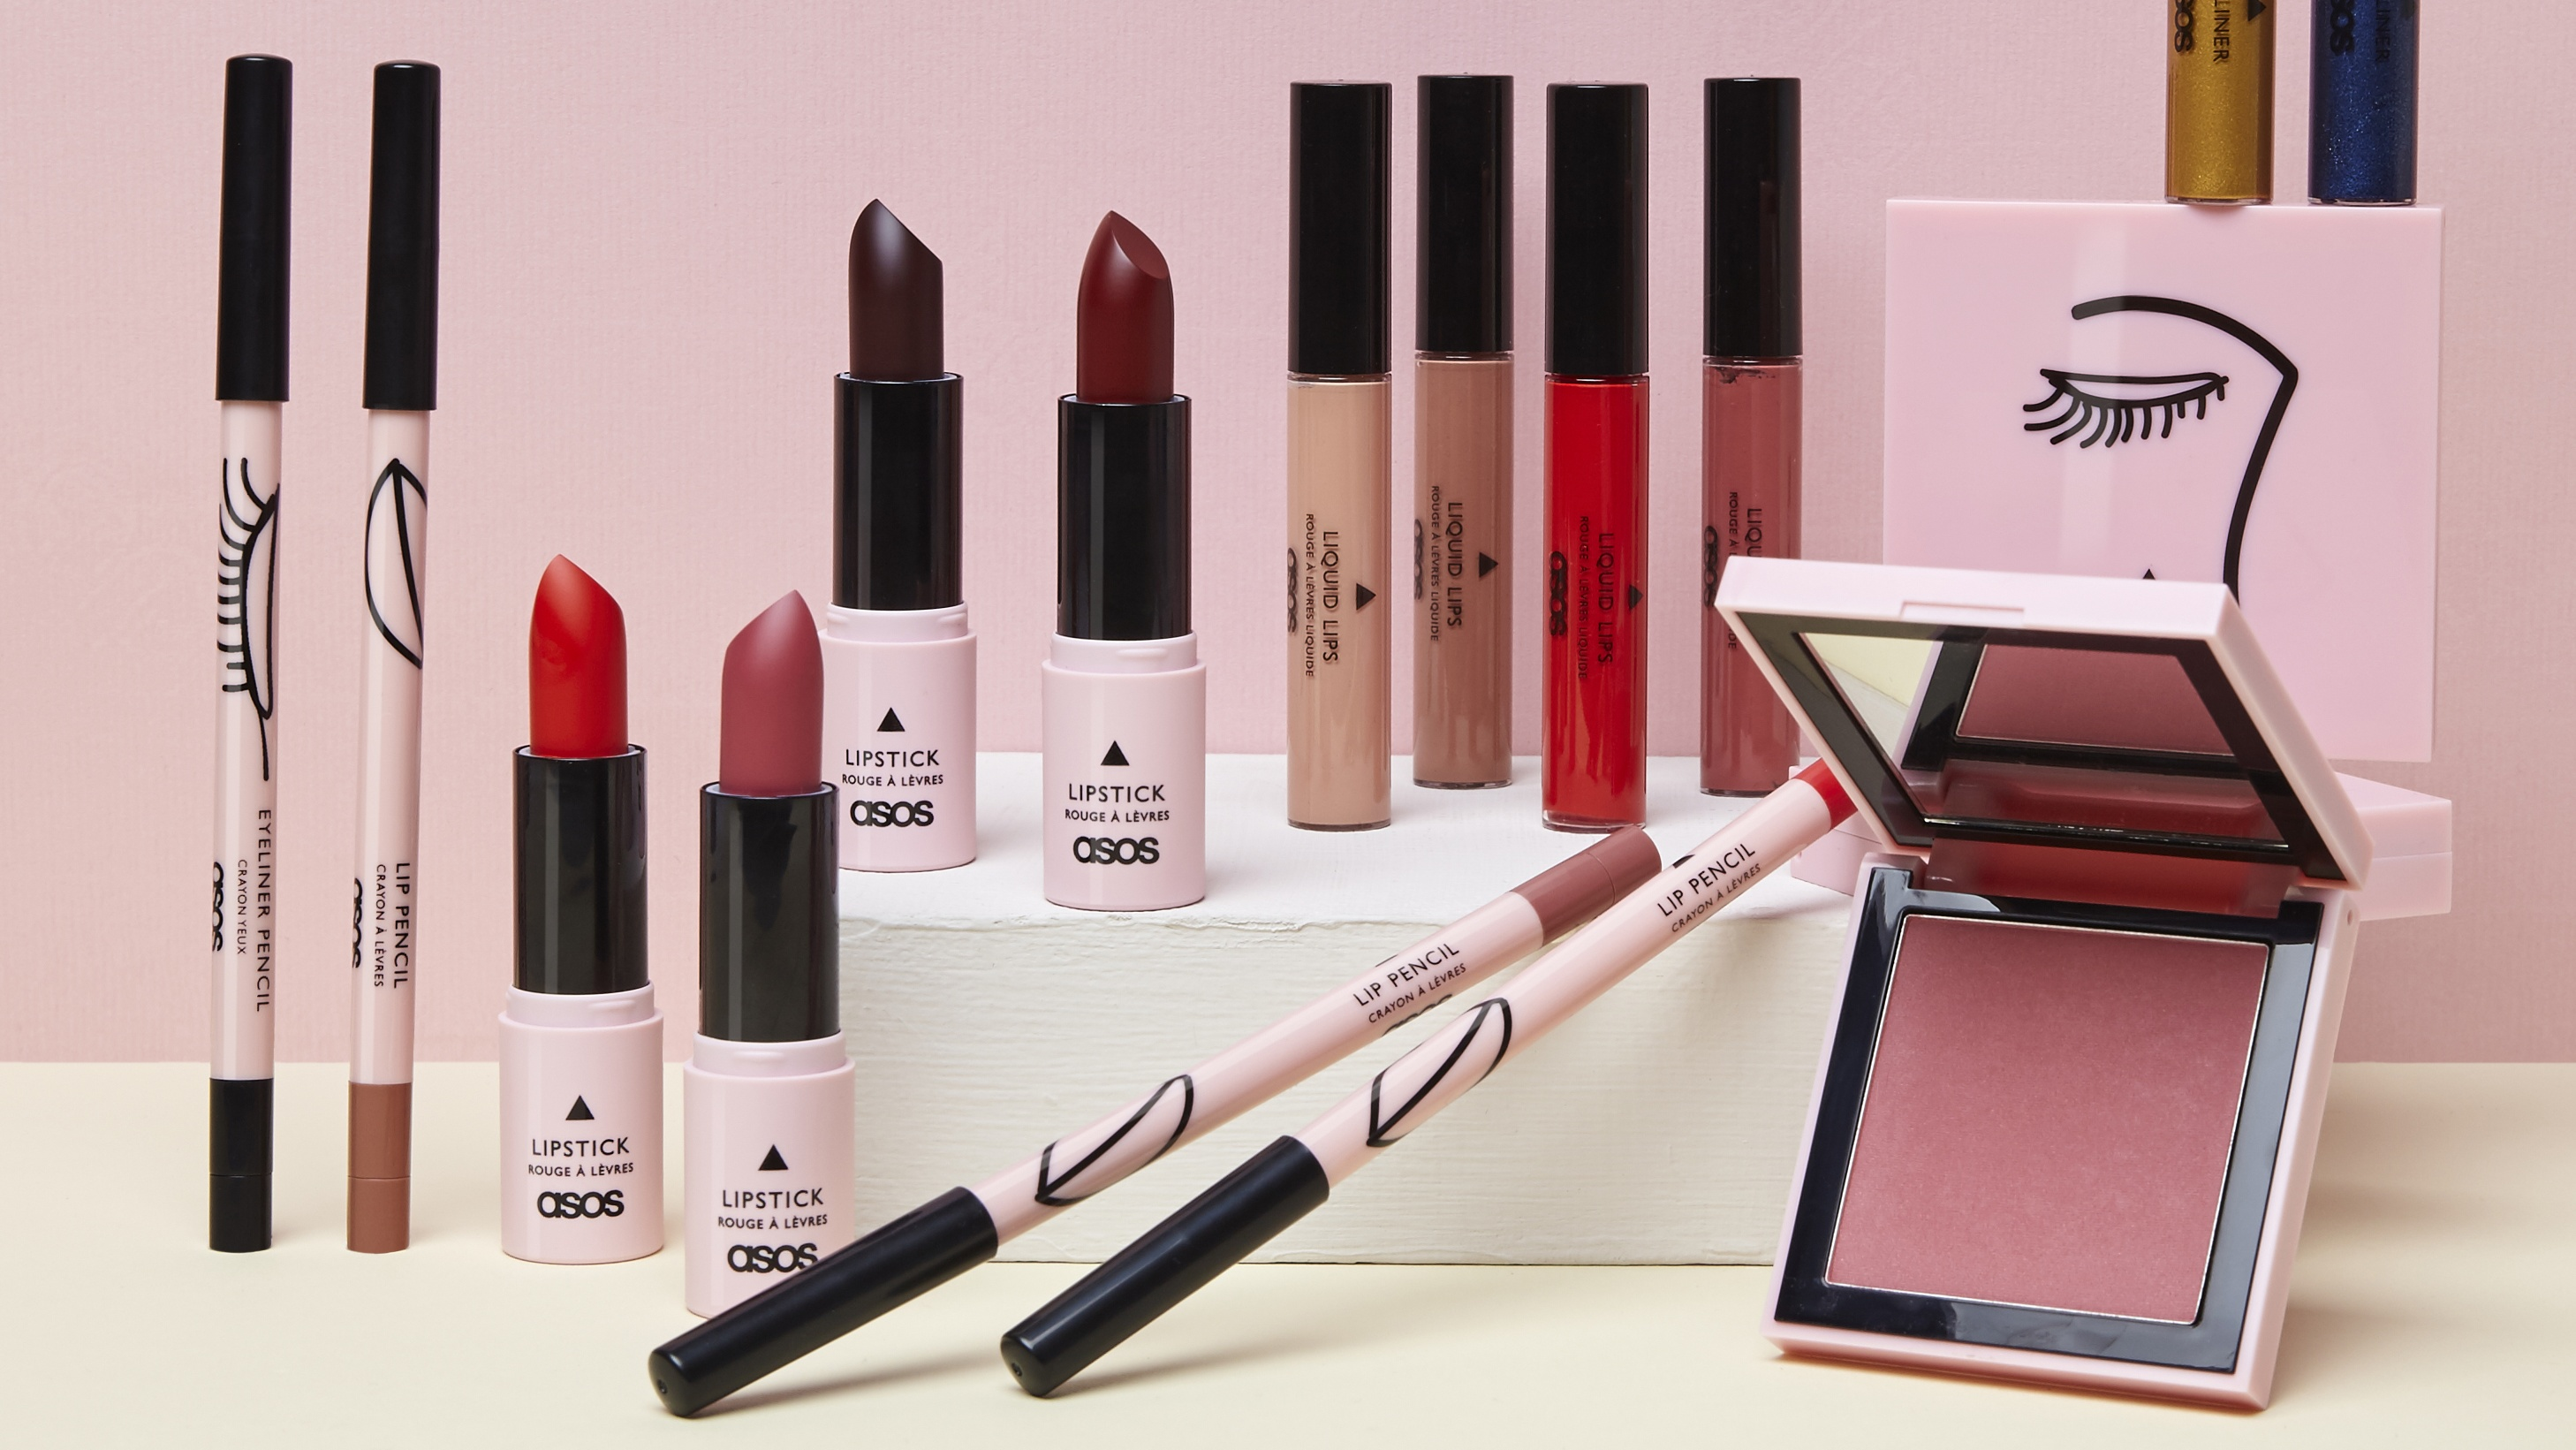 products from the ASOS make-up collection